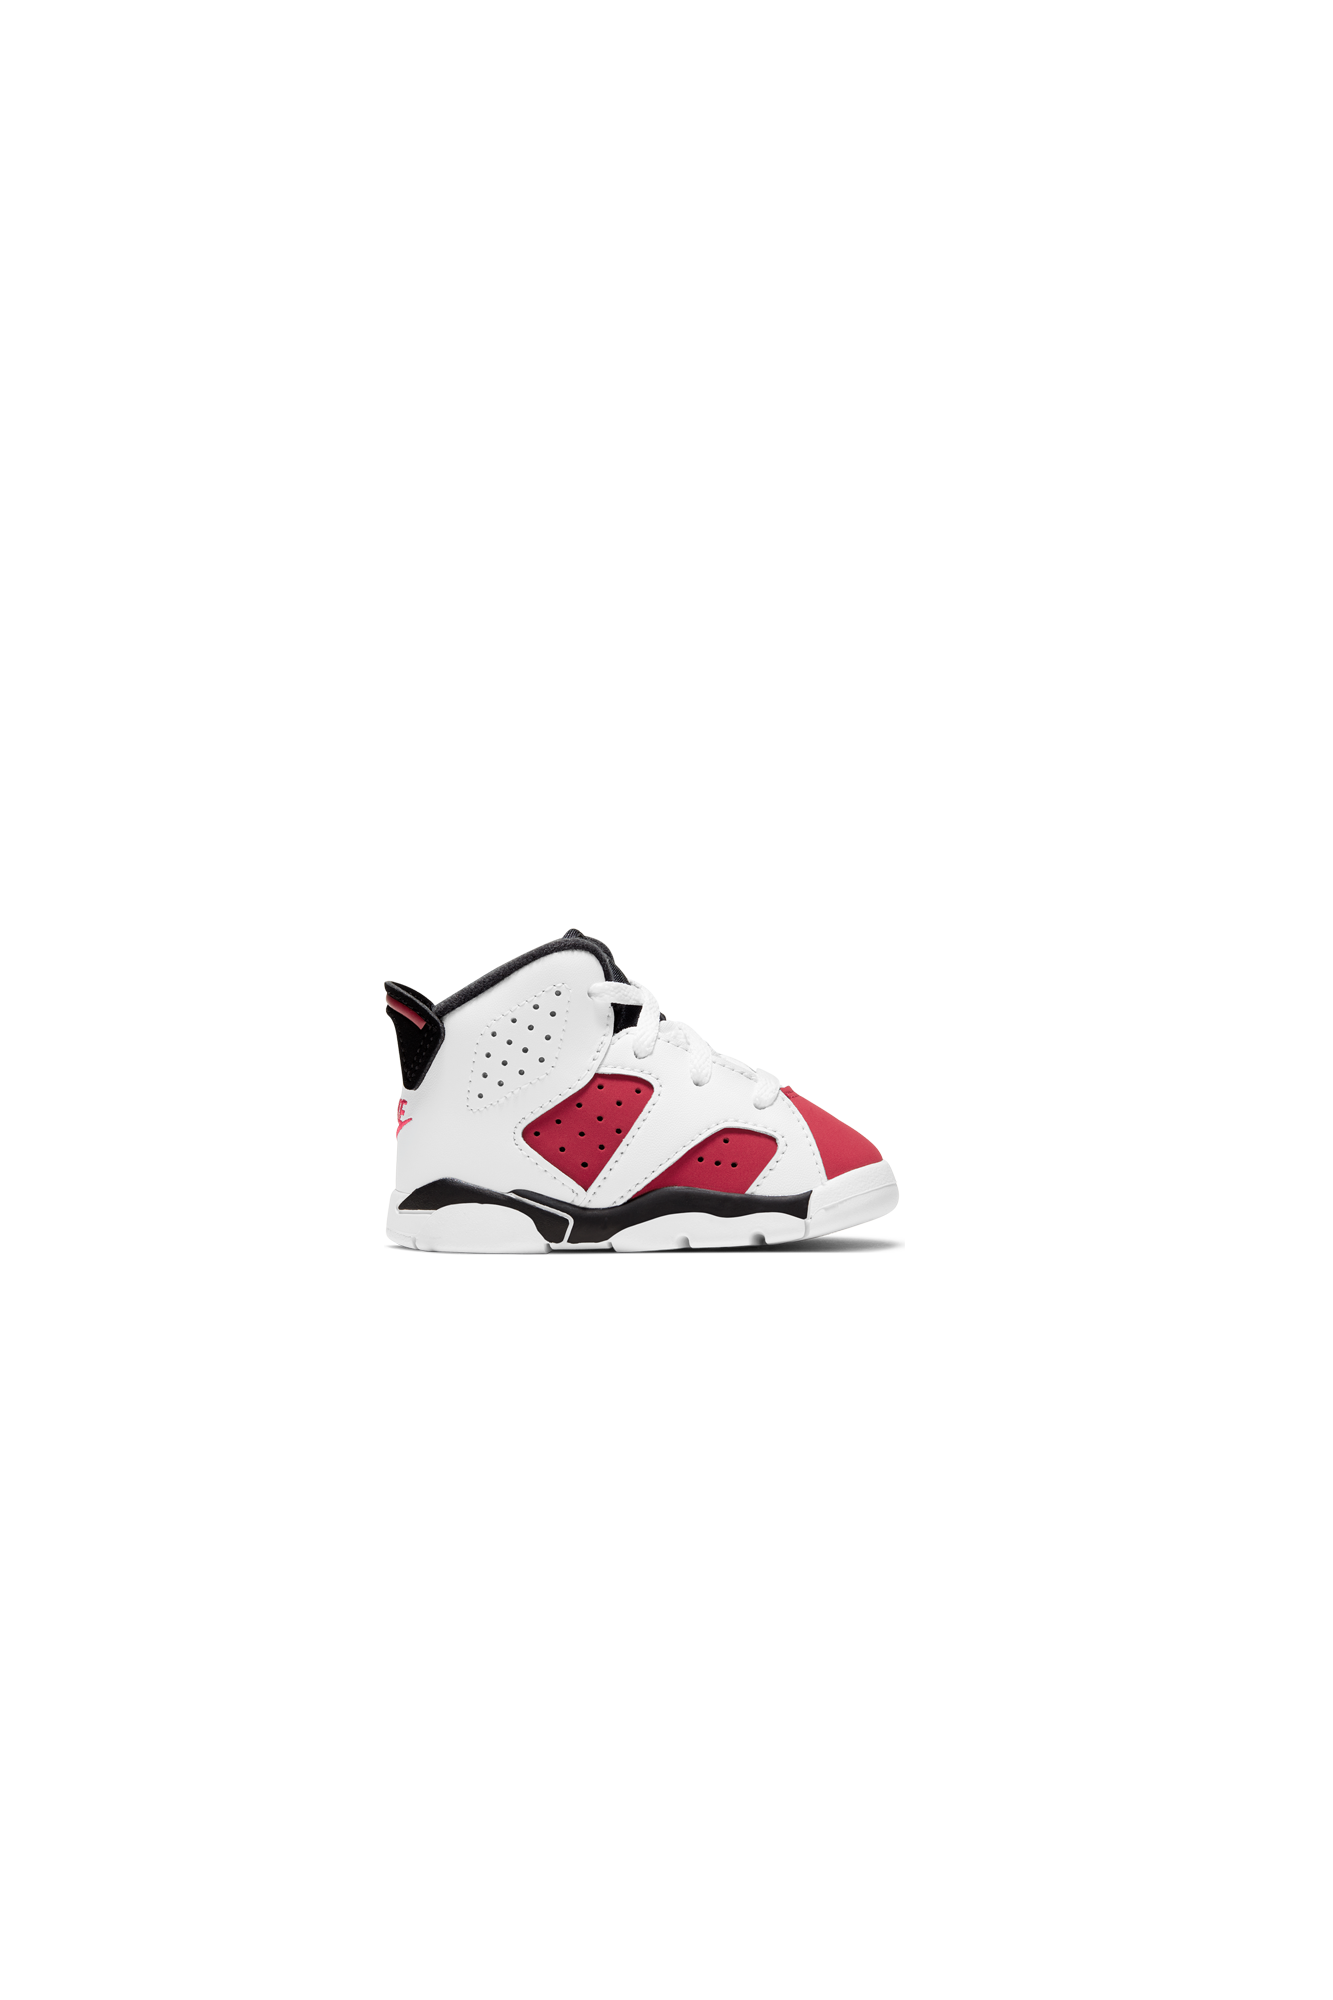 "Jordan Brand Sneakers 6 Retro OG ""Carmine"" TD White 384667-#000#106#2c - One Block Down"